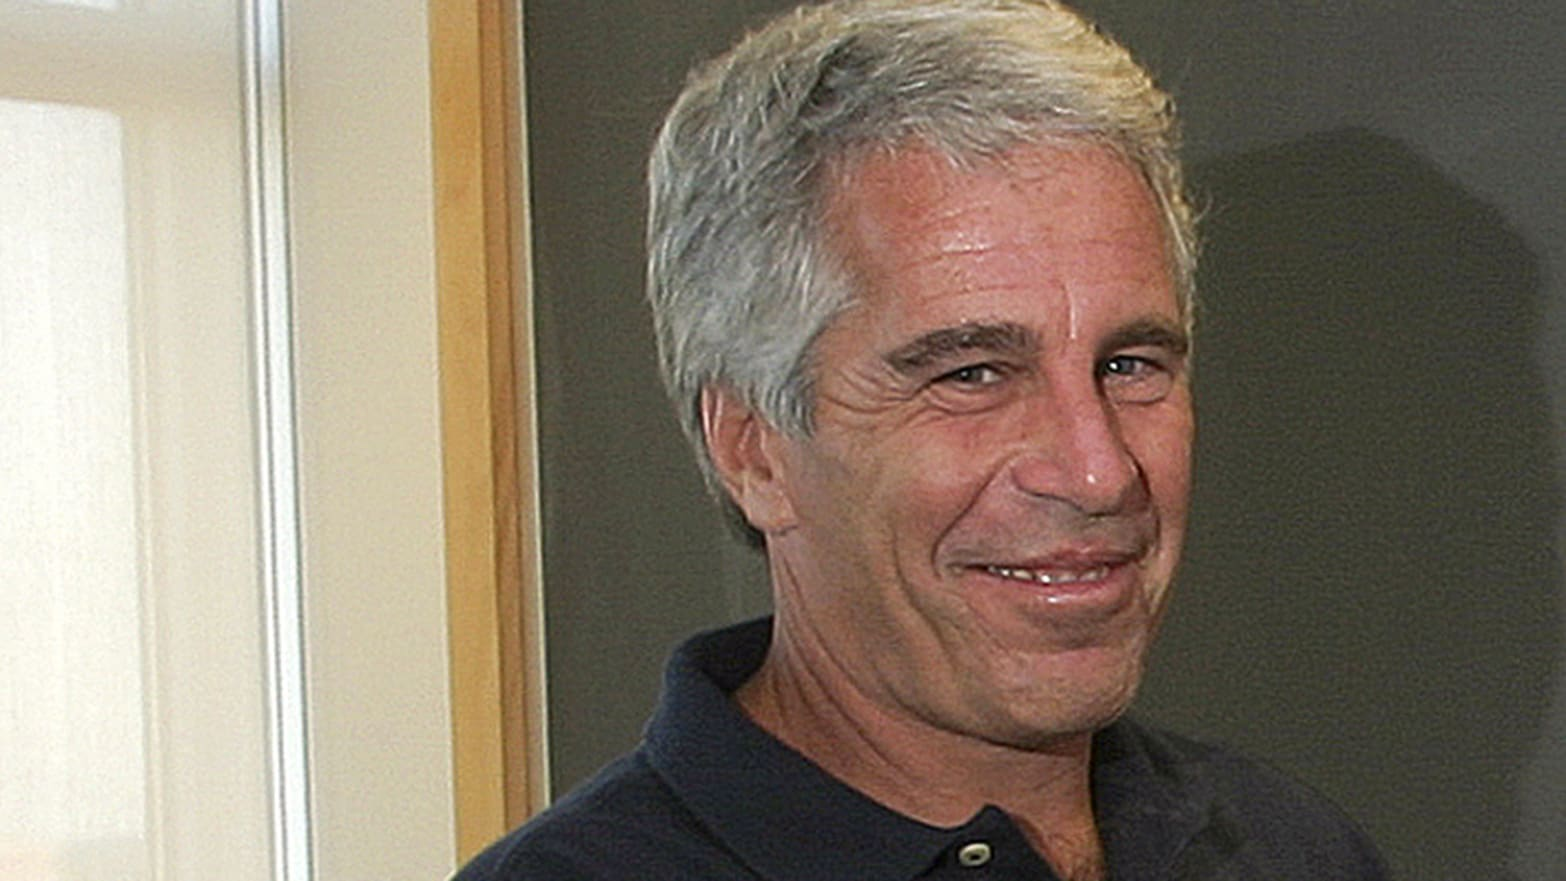 Jeffrey Epstein and the New Pedophile Defense